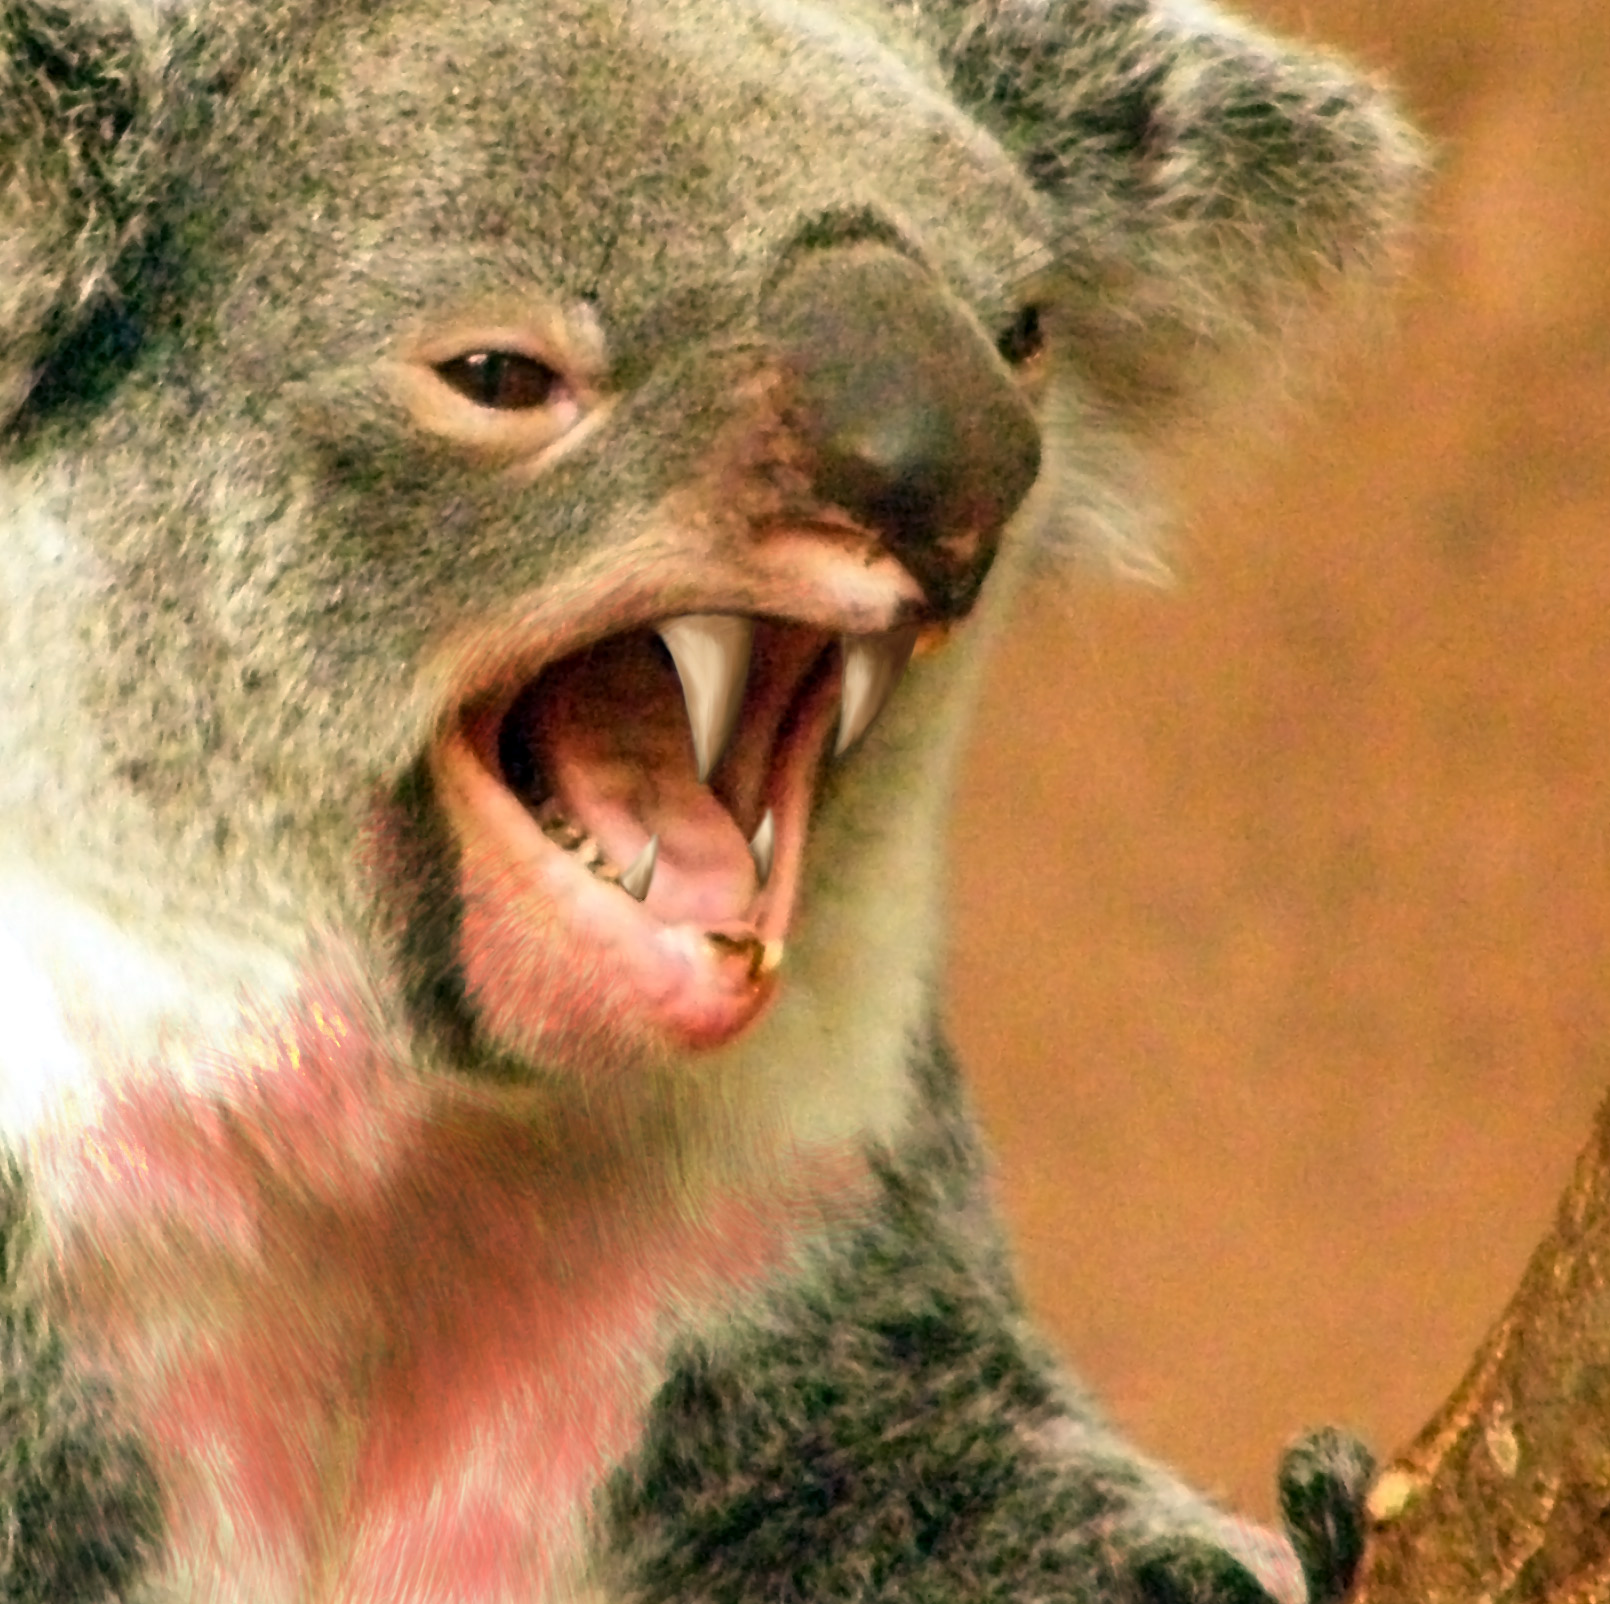 #7 TOP IA STORY OF 2020: Drop Bears feared extinct due to Australian bushfires